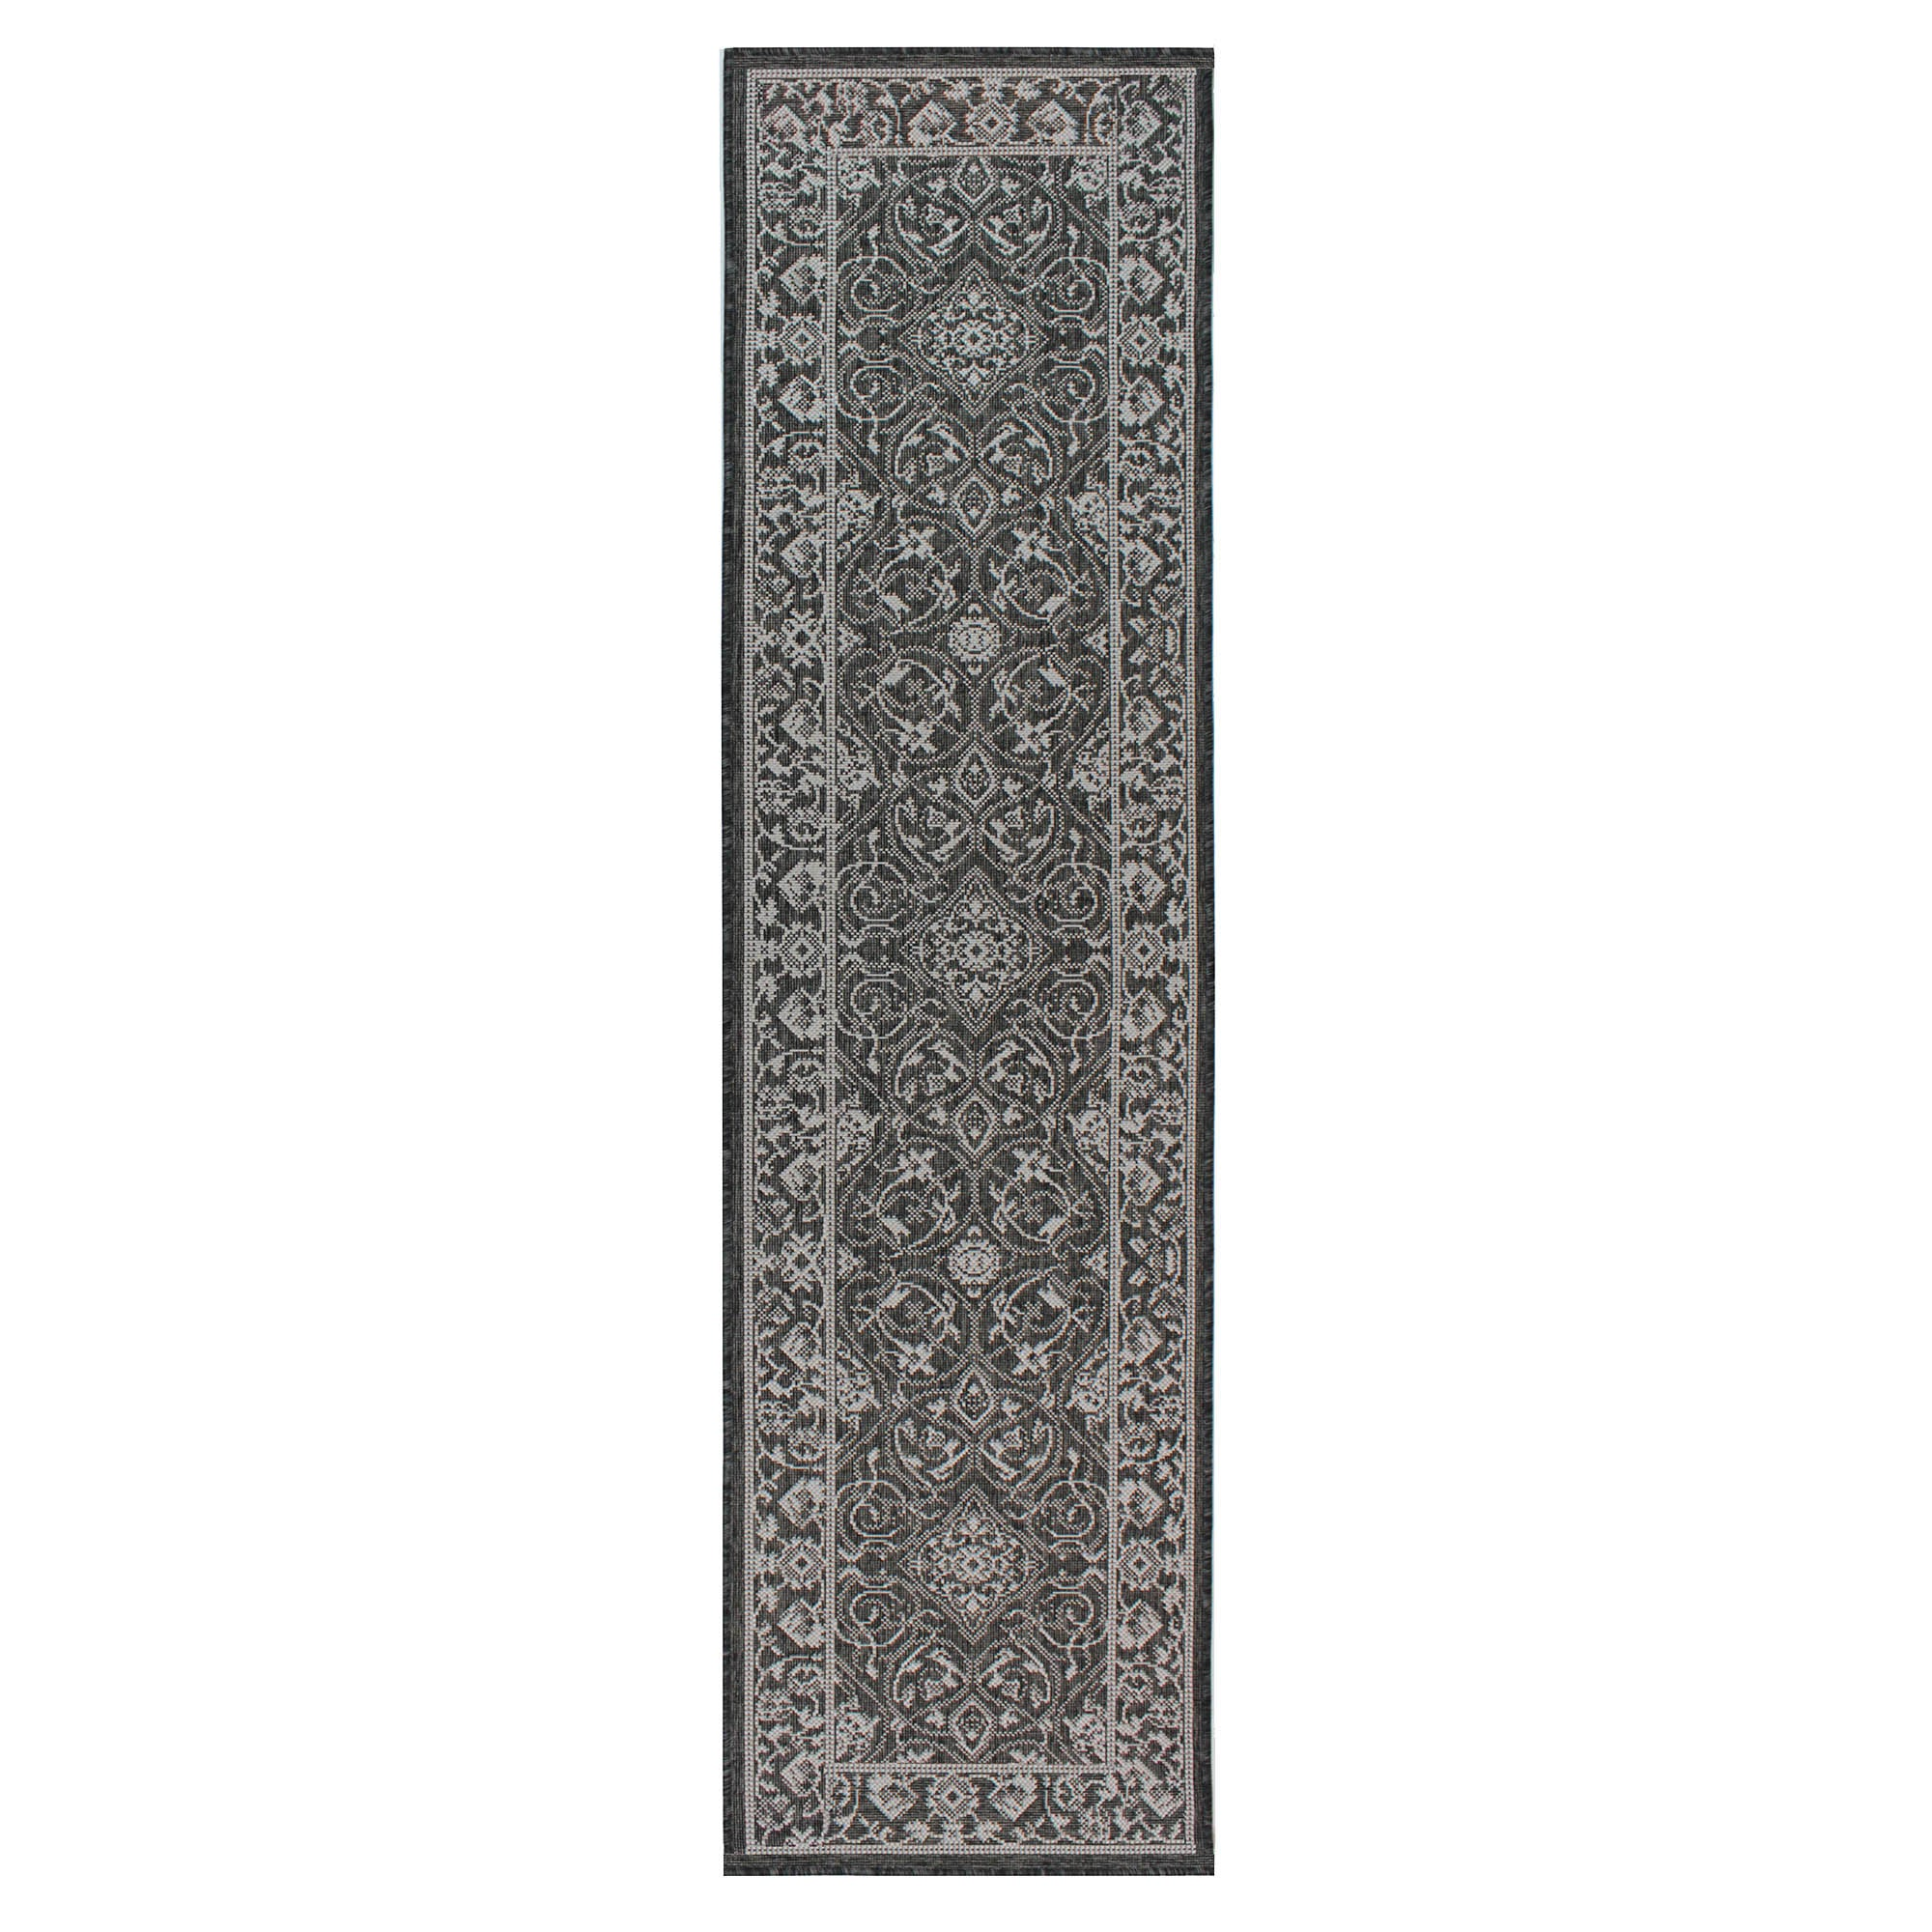 Photo of Black traditional flatweave runner black